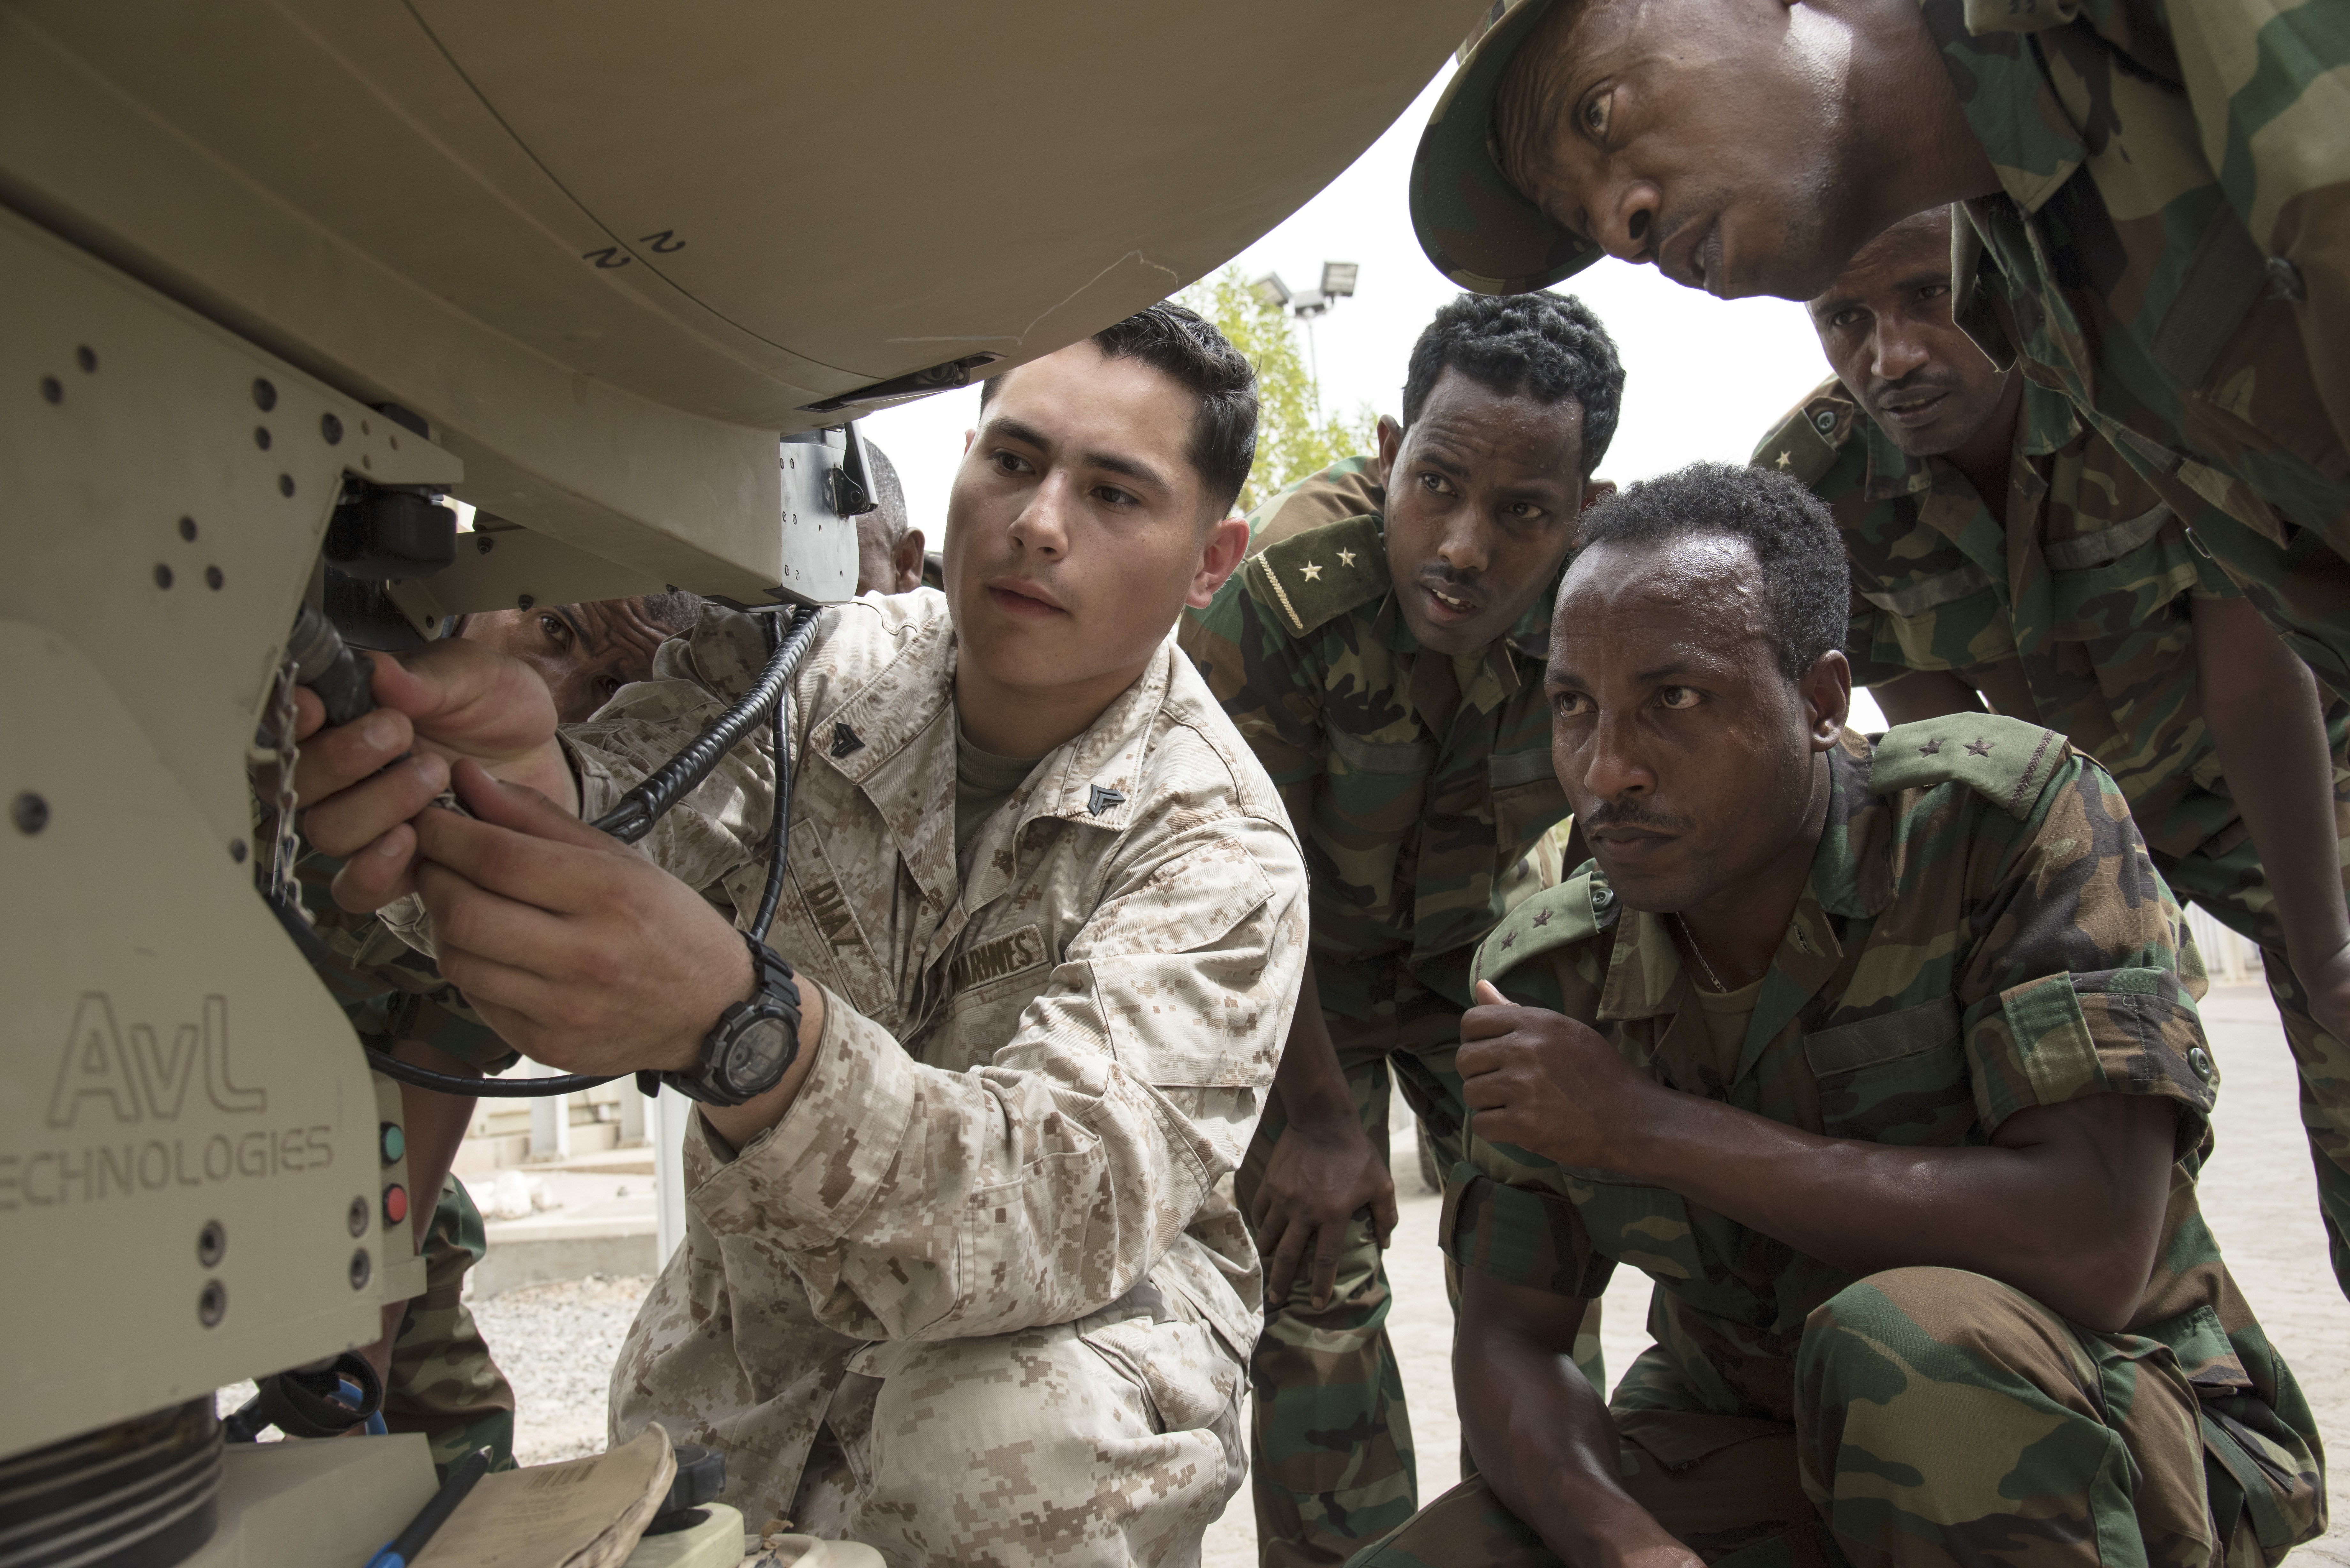 U.S. Marine Cpl. Daniel Diaz, U.S. Africa Command Data Sharing Network (ADSN) course instructor, shows intelligence specialists from the Ethiopian National Defense Force (ENDF), how to properly setup a portable communication terminal at Camp Lemonnier, Djibouti, Aug. 18, 2015. Members of the ENDF and Djiboutian Armed Forces (FAD) participated in a multi-week ADSN course, which was hosted by Combined Joint Task Force-Horn of Africa communications and intelligence personnel, and was designed to broaden communication interoperability between host nation security forces. (U.S. Air Force photo by Staff Sgt. Nathan Maysonet/released)